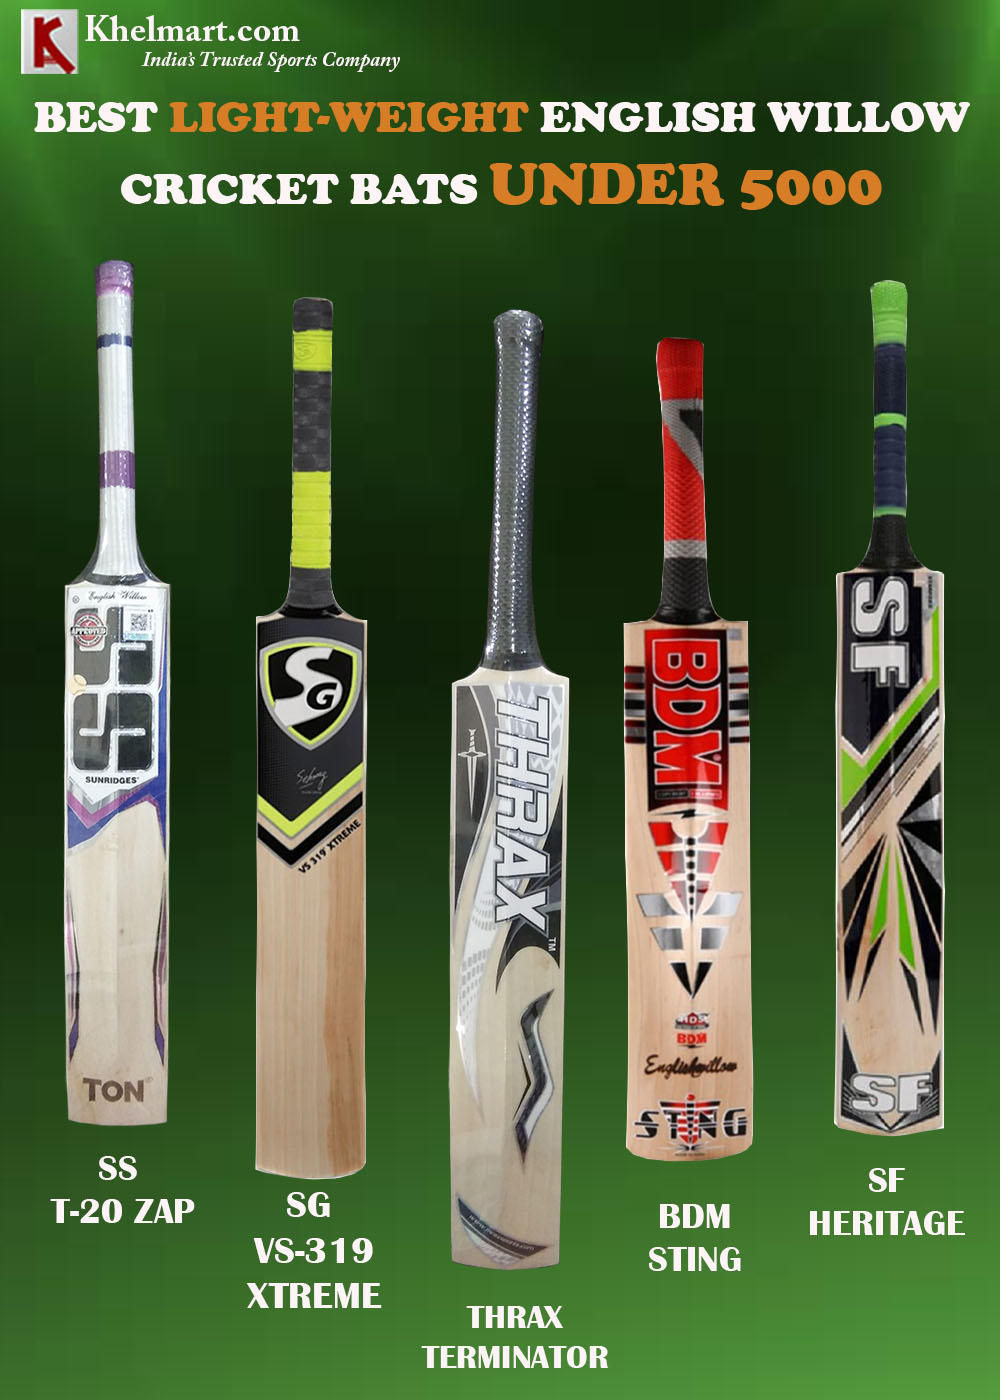 BEST LIGHT WEIGHT ENGLISH WILLOW CRICKET BATS UNDER 5000